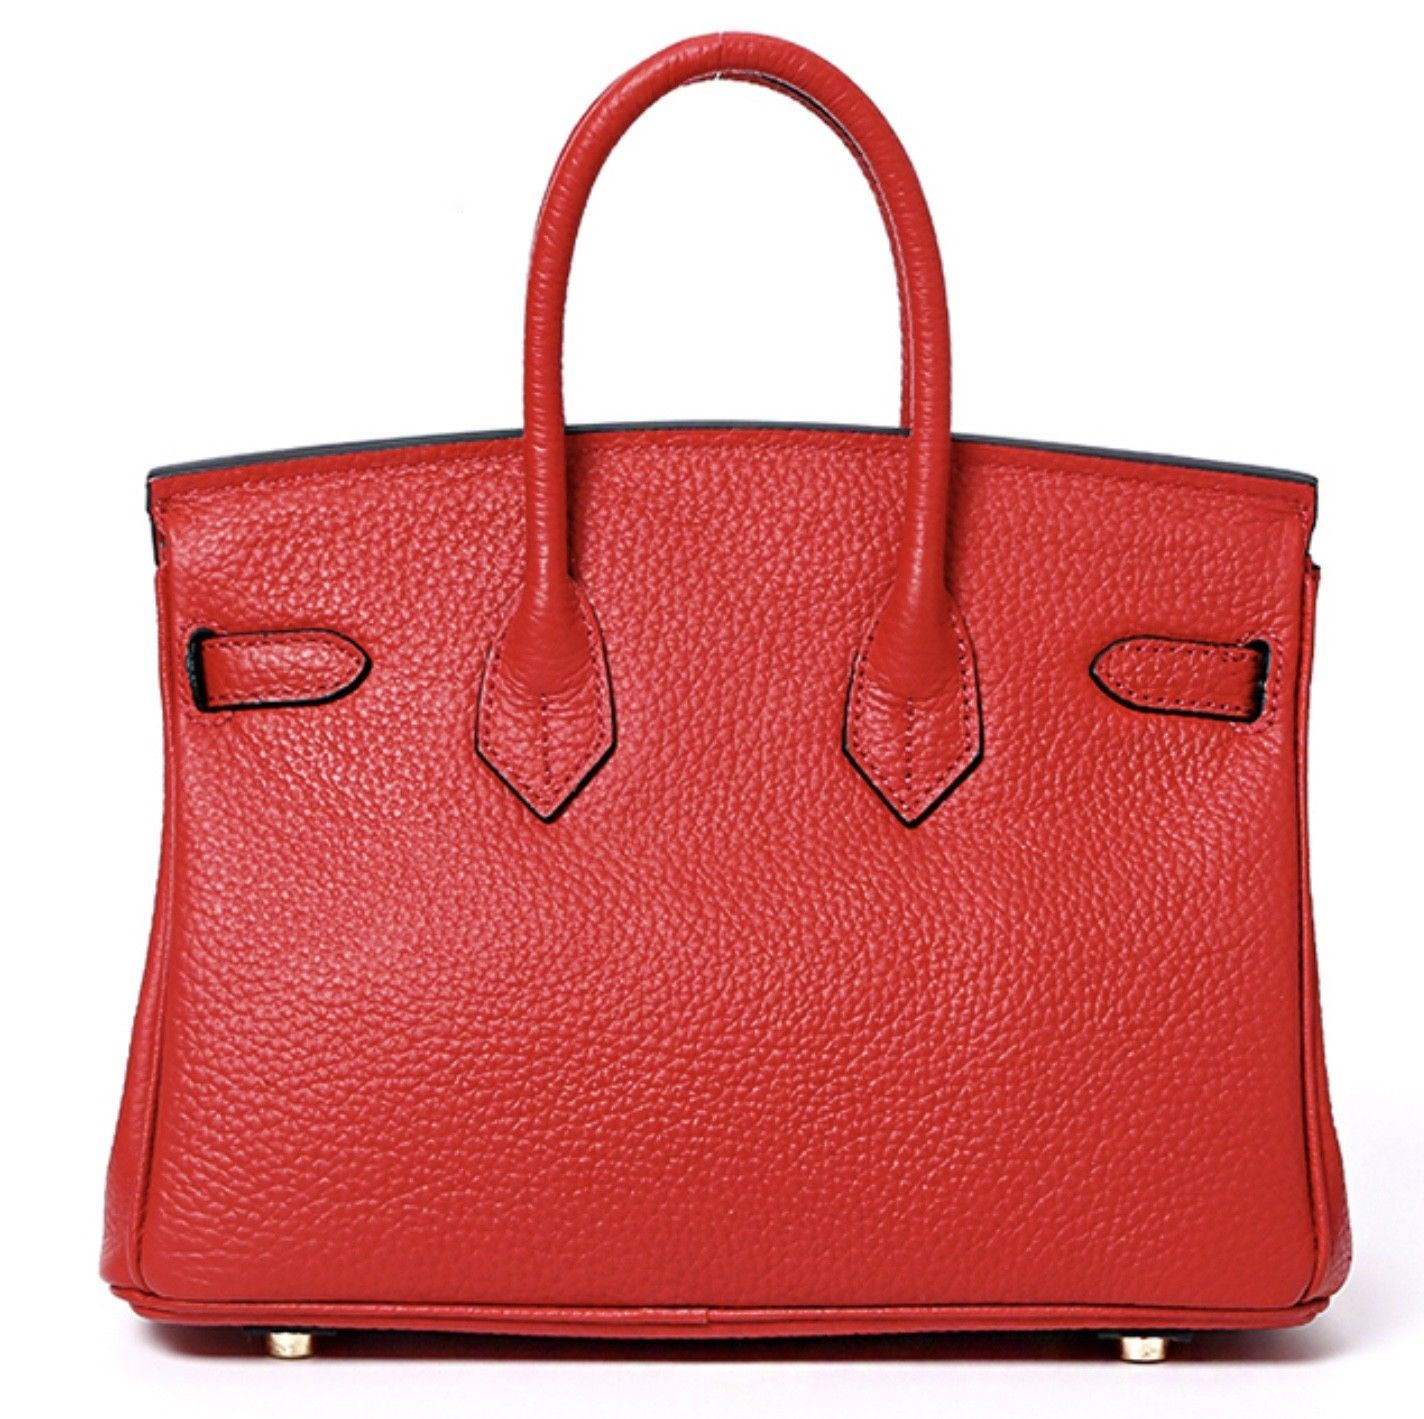 New 30cm Pebbled Leather Birkin Style Handbag Shoulder Bag Satchel Purse 1946M